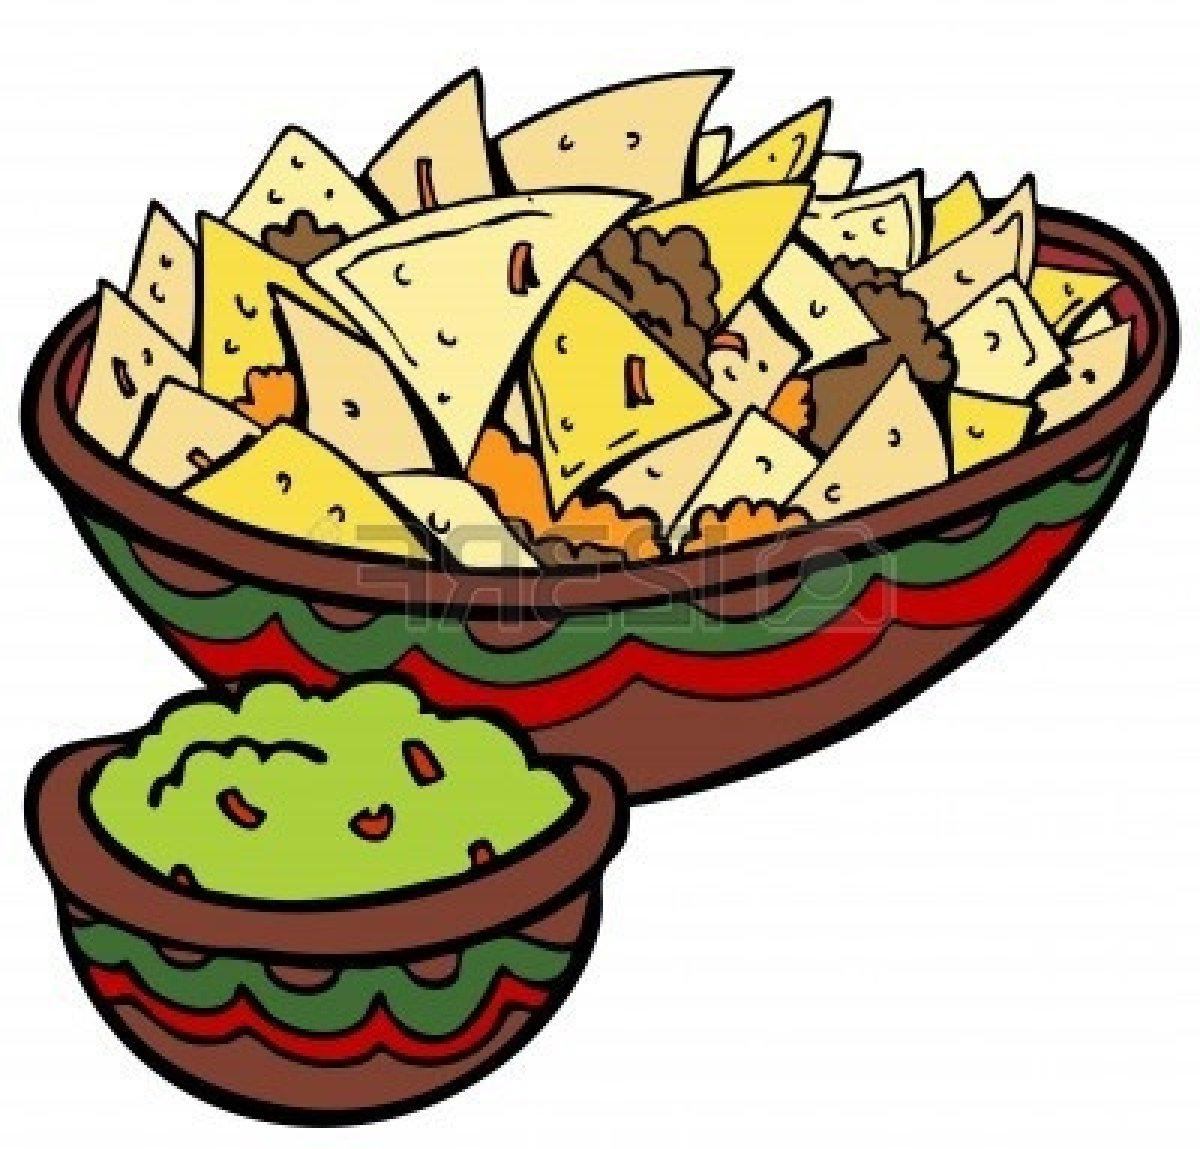 Best Free Appetizers And Cocktails Clip Art Vector Pictures.